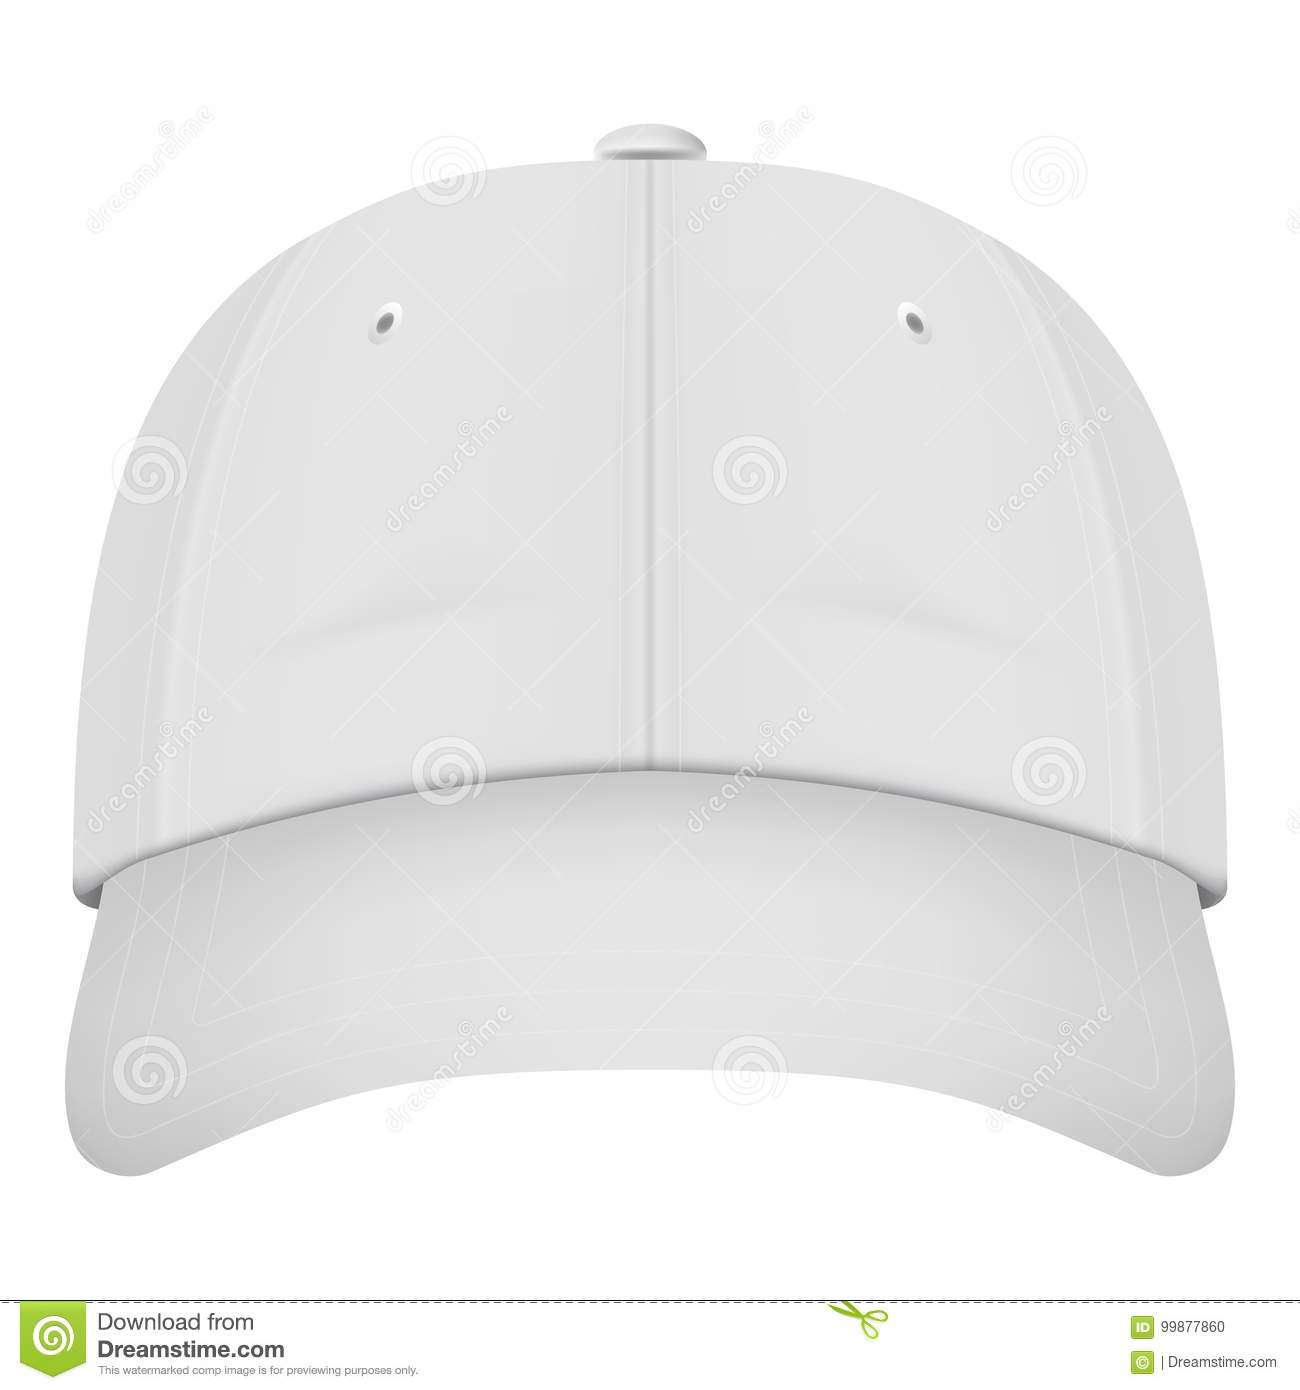 b628ce68 Realistic Front View White Baseball Cap Isolated On A White Background.  Vector Illustration.